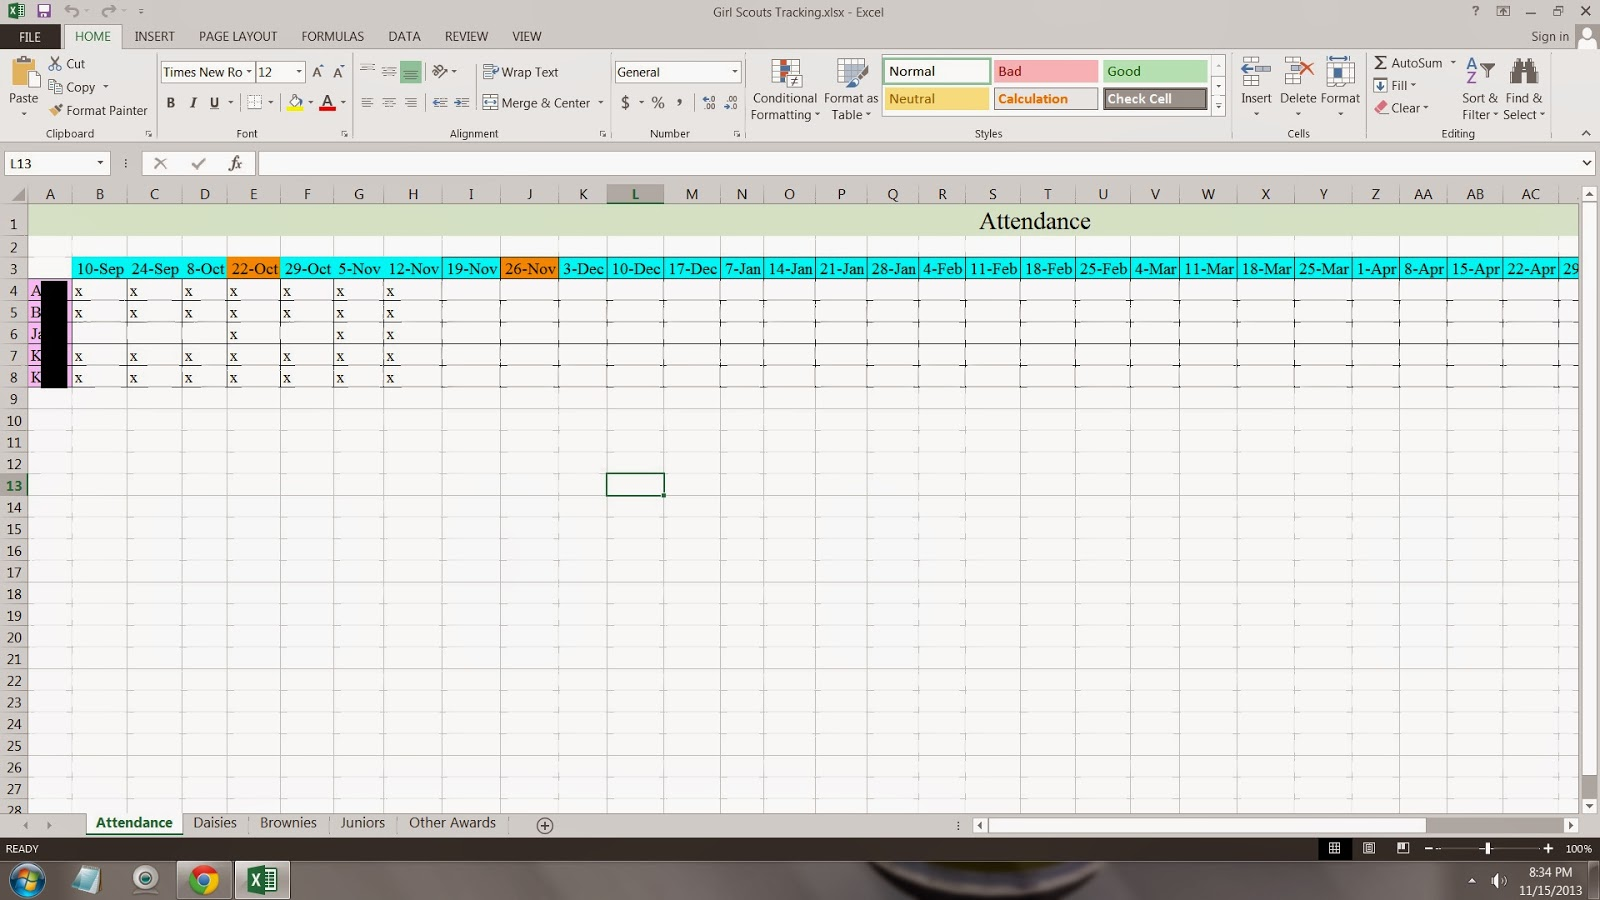 Thrifty Momma Tracking Spreadsheet For Girl Scouts